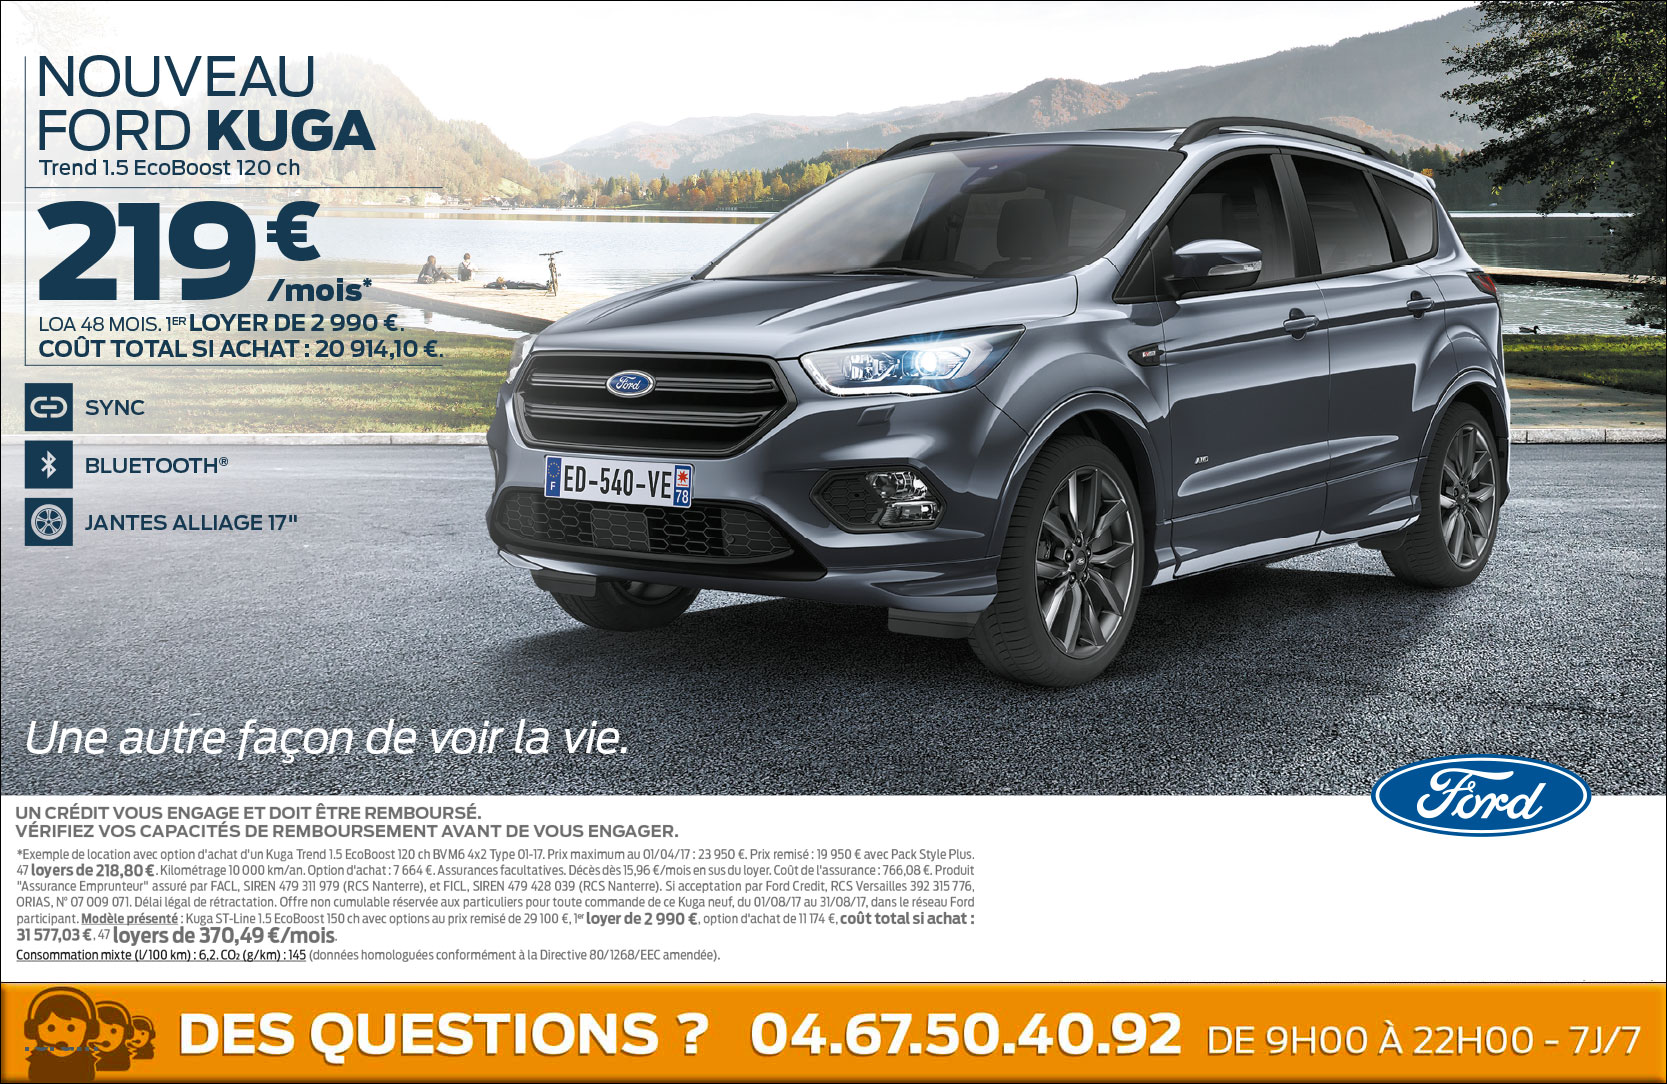 ford kuga montpellier valence 11beziers 2 groupe grim ford. Black Bedroom Furniture Sets. Home Design Ideas